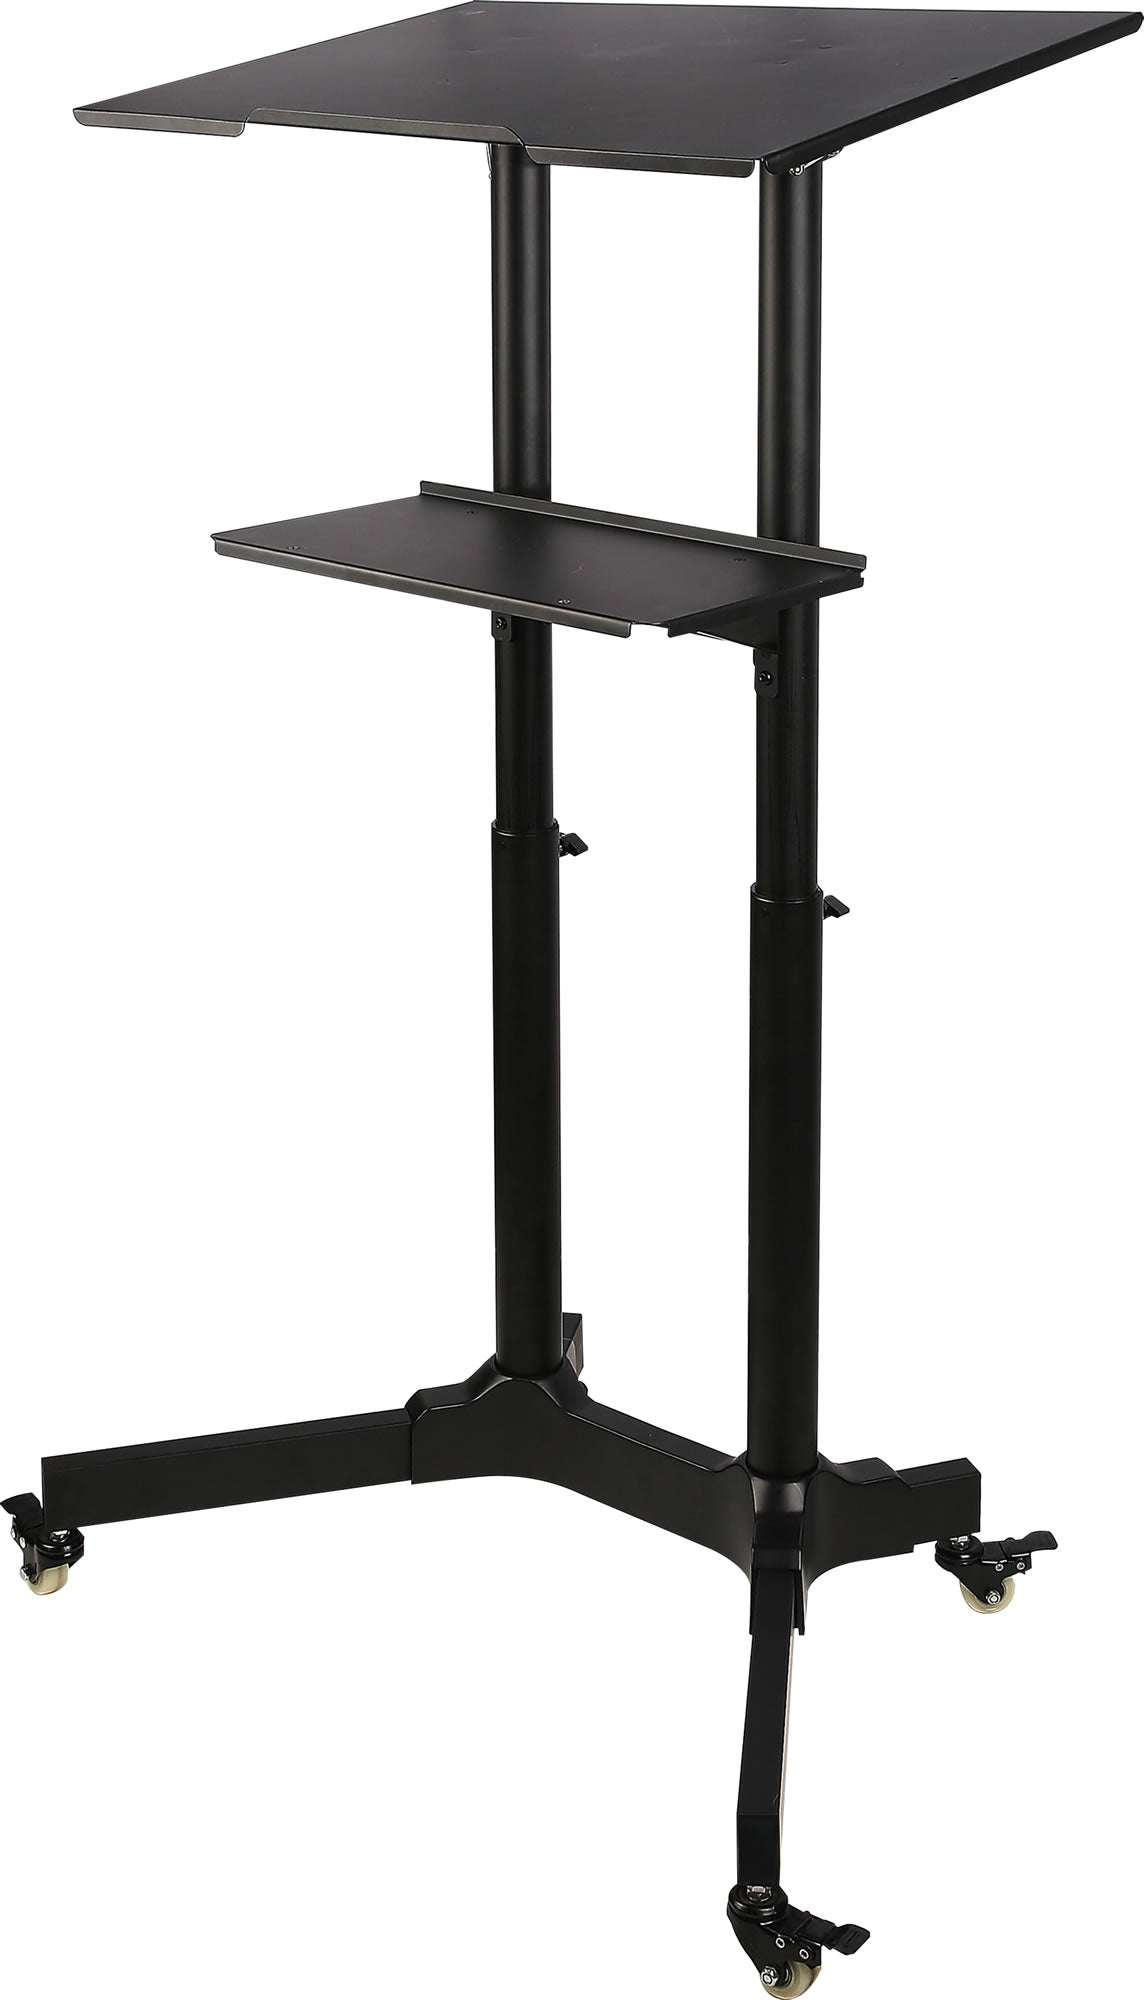 64-1210 Mobile Adjustable Height Stand Up Workstation